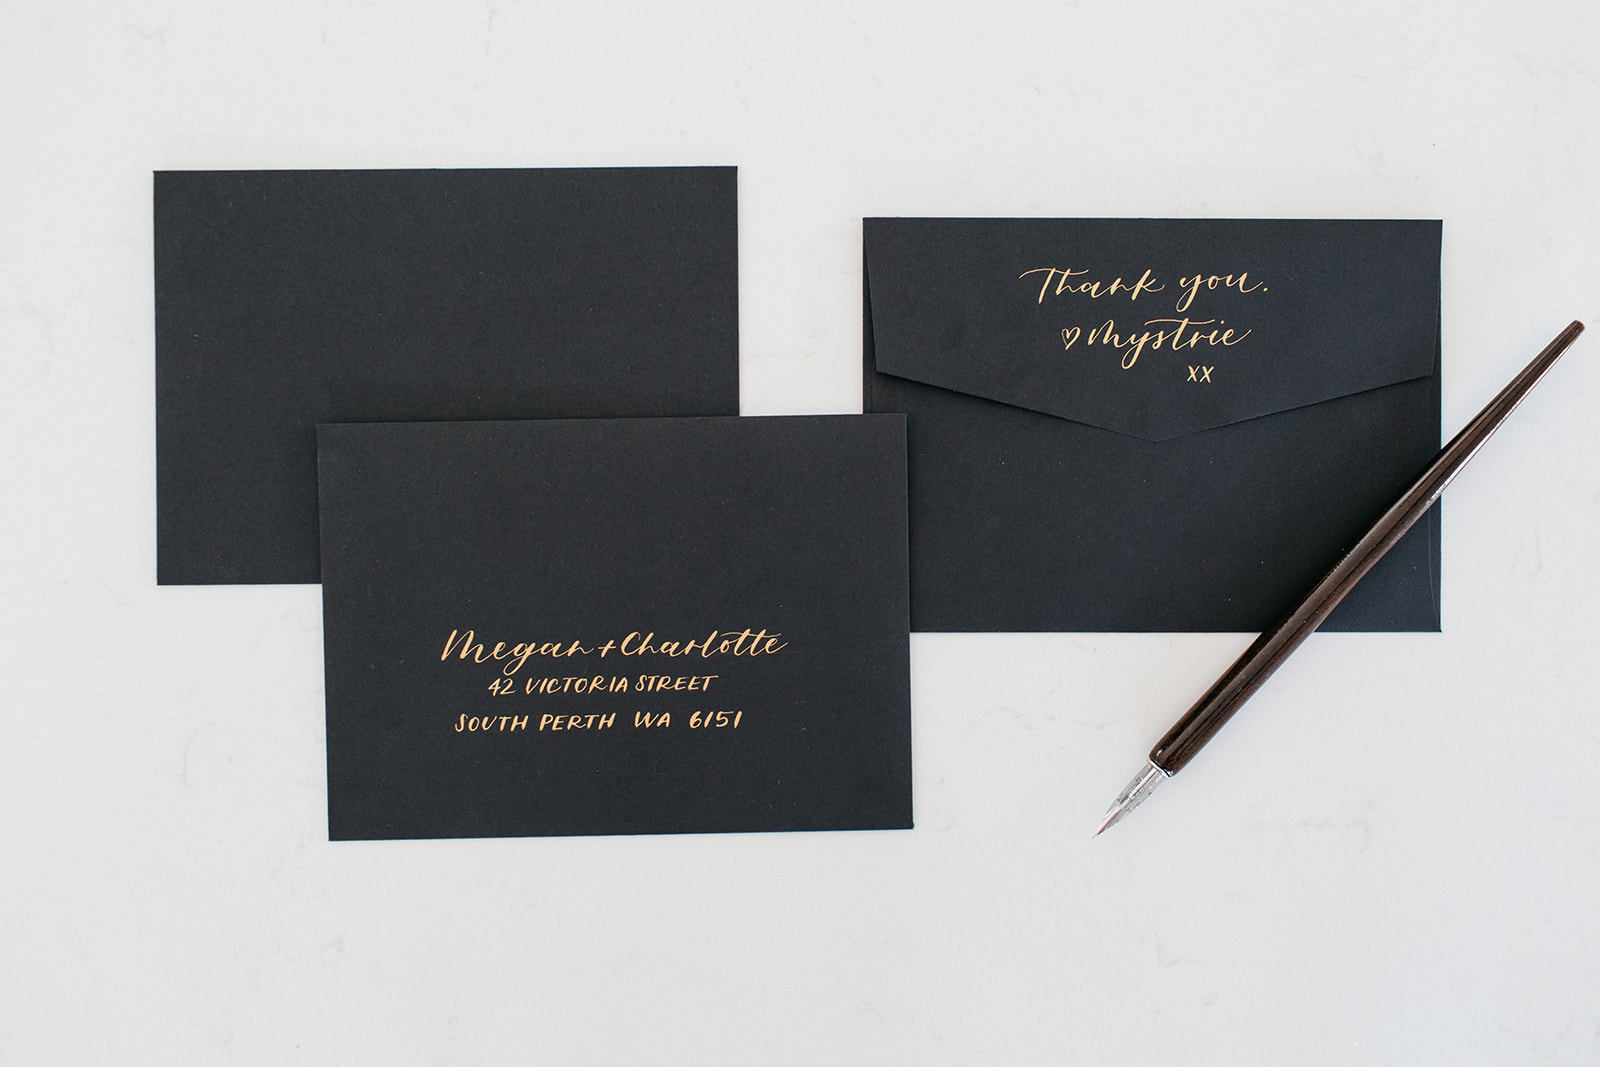 Calligraphy personal branding photoshoot by Montreal photographer.